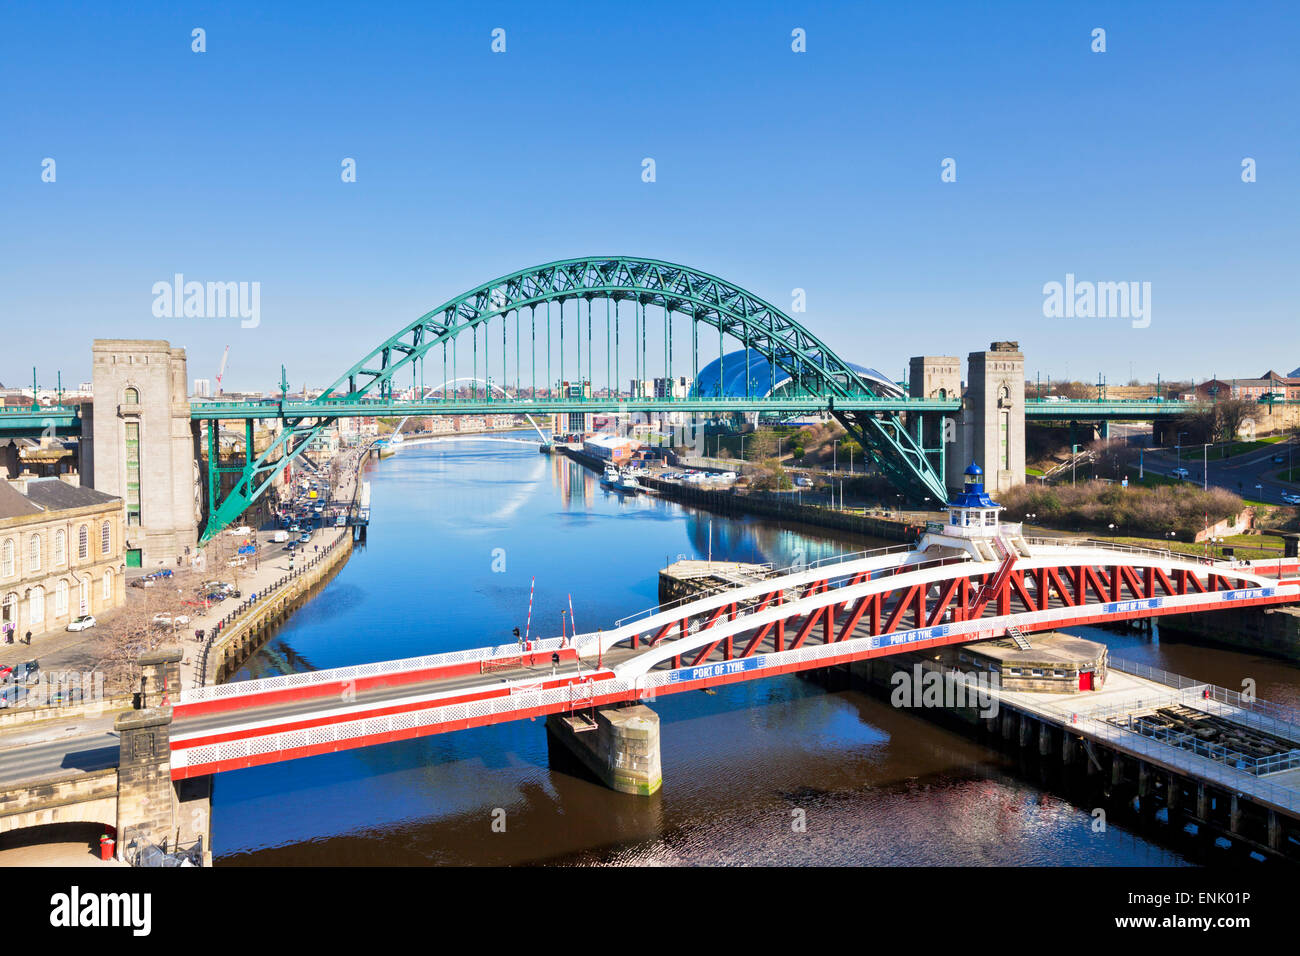 Newcastle upon Tyne city with Tyne Bridge and Swing Bridge over River Tyne, Gateshead, Tyne and Wear, England, United - Stock Image